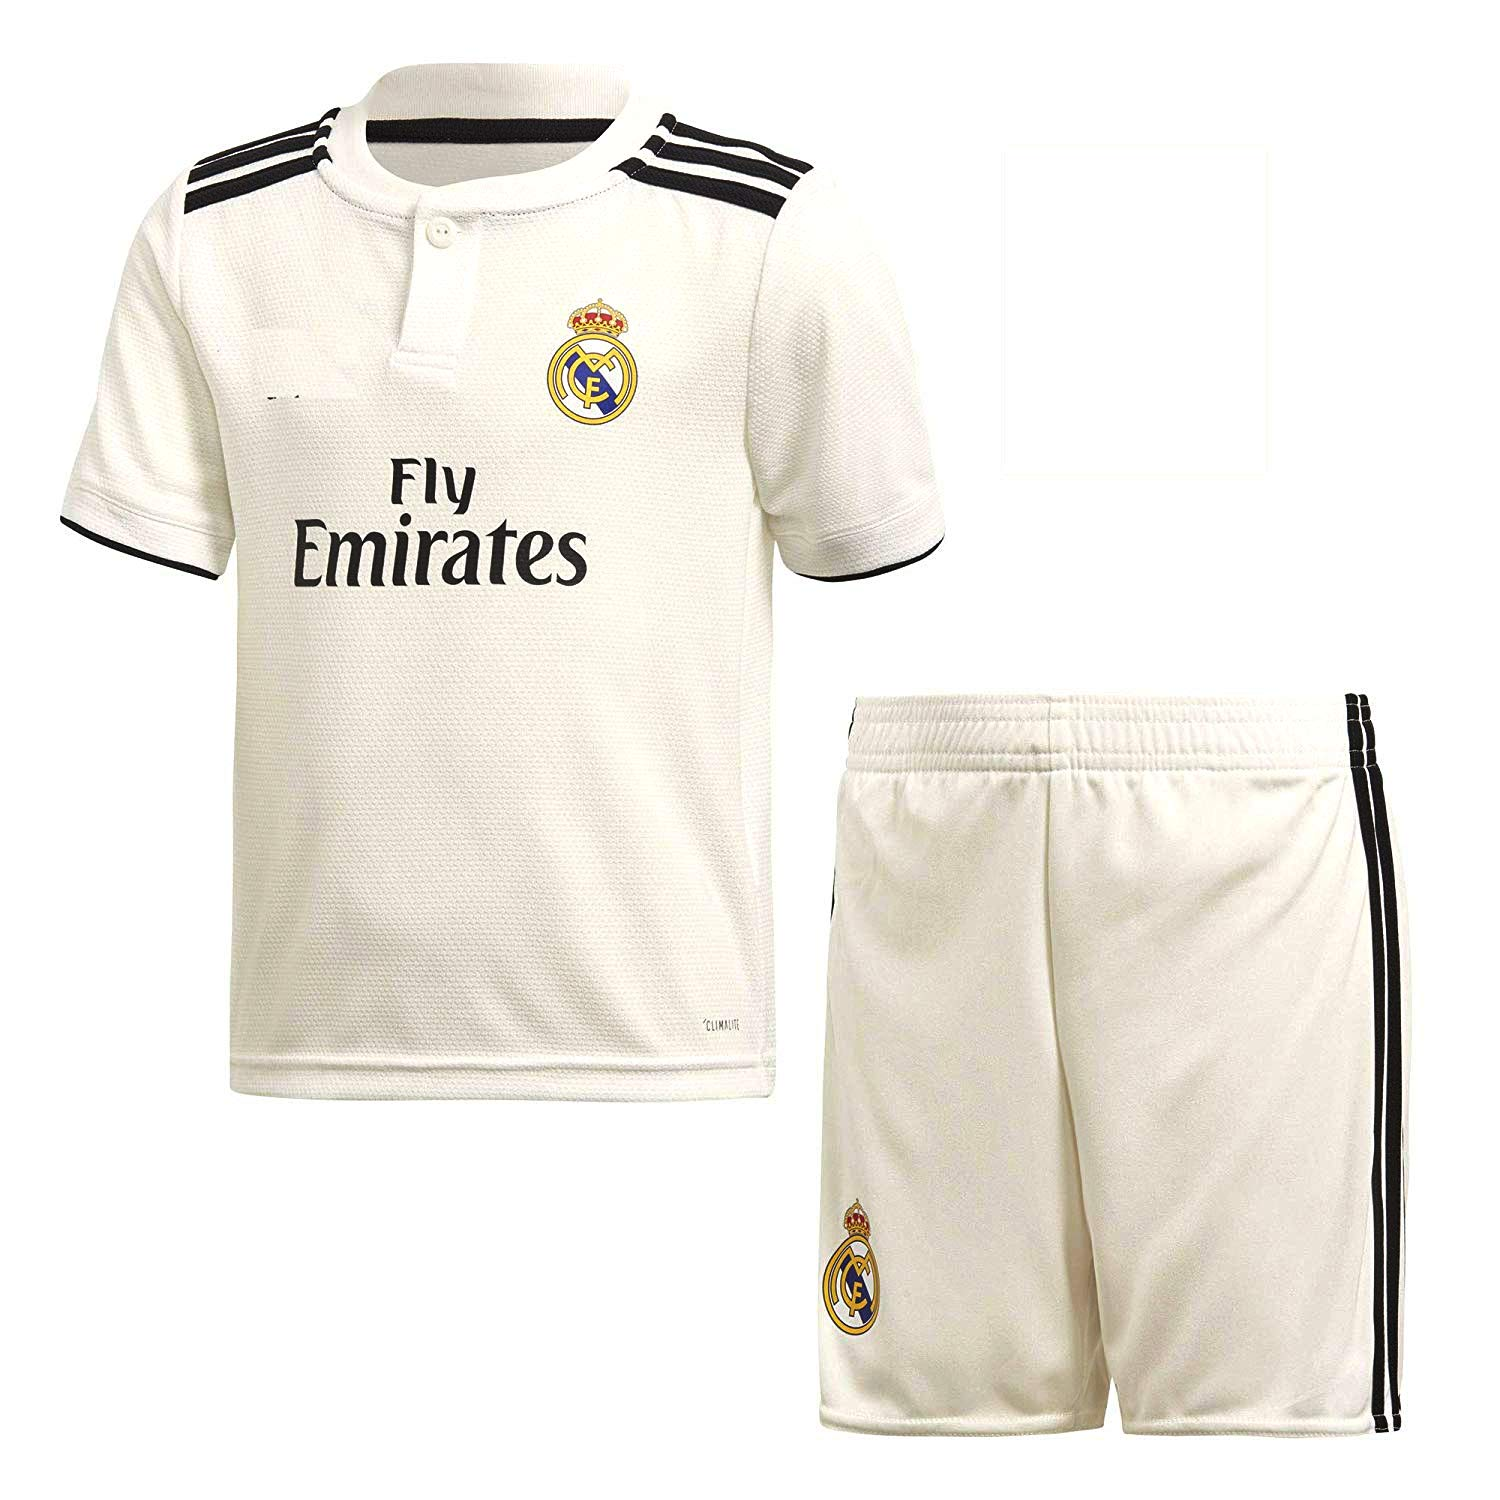 buy popular 3c695 c27e5 Real Madrid Home 2018-2019 Jersey kit for Adults - T Shirt and Shorts  Jersey Set